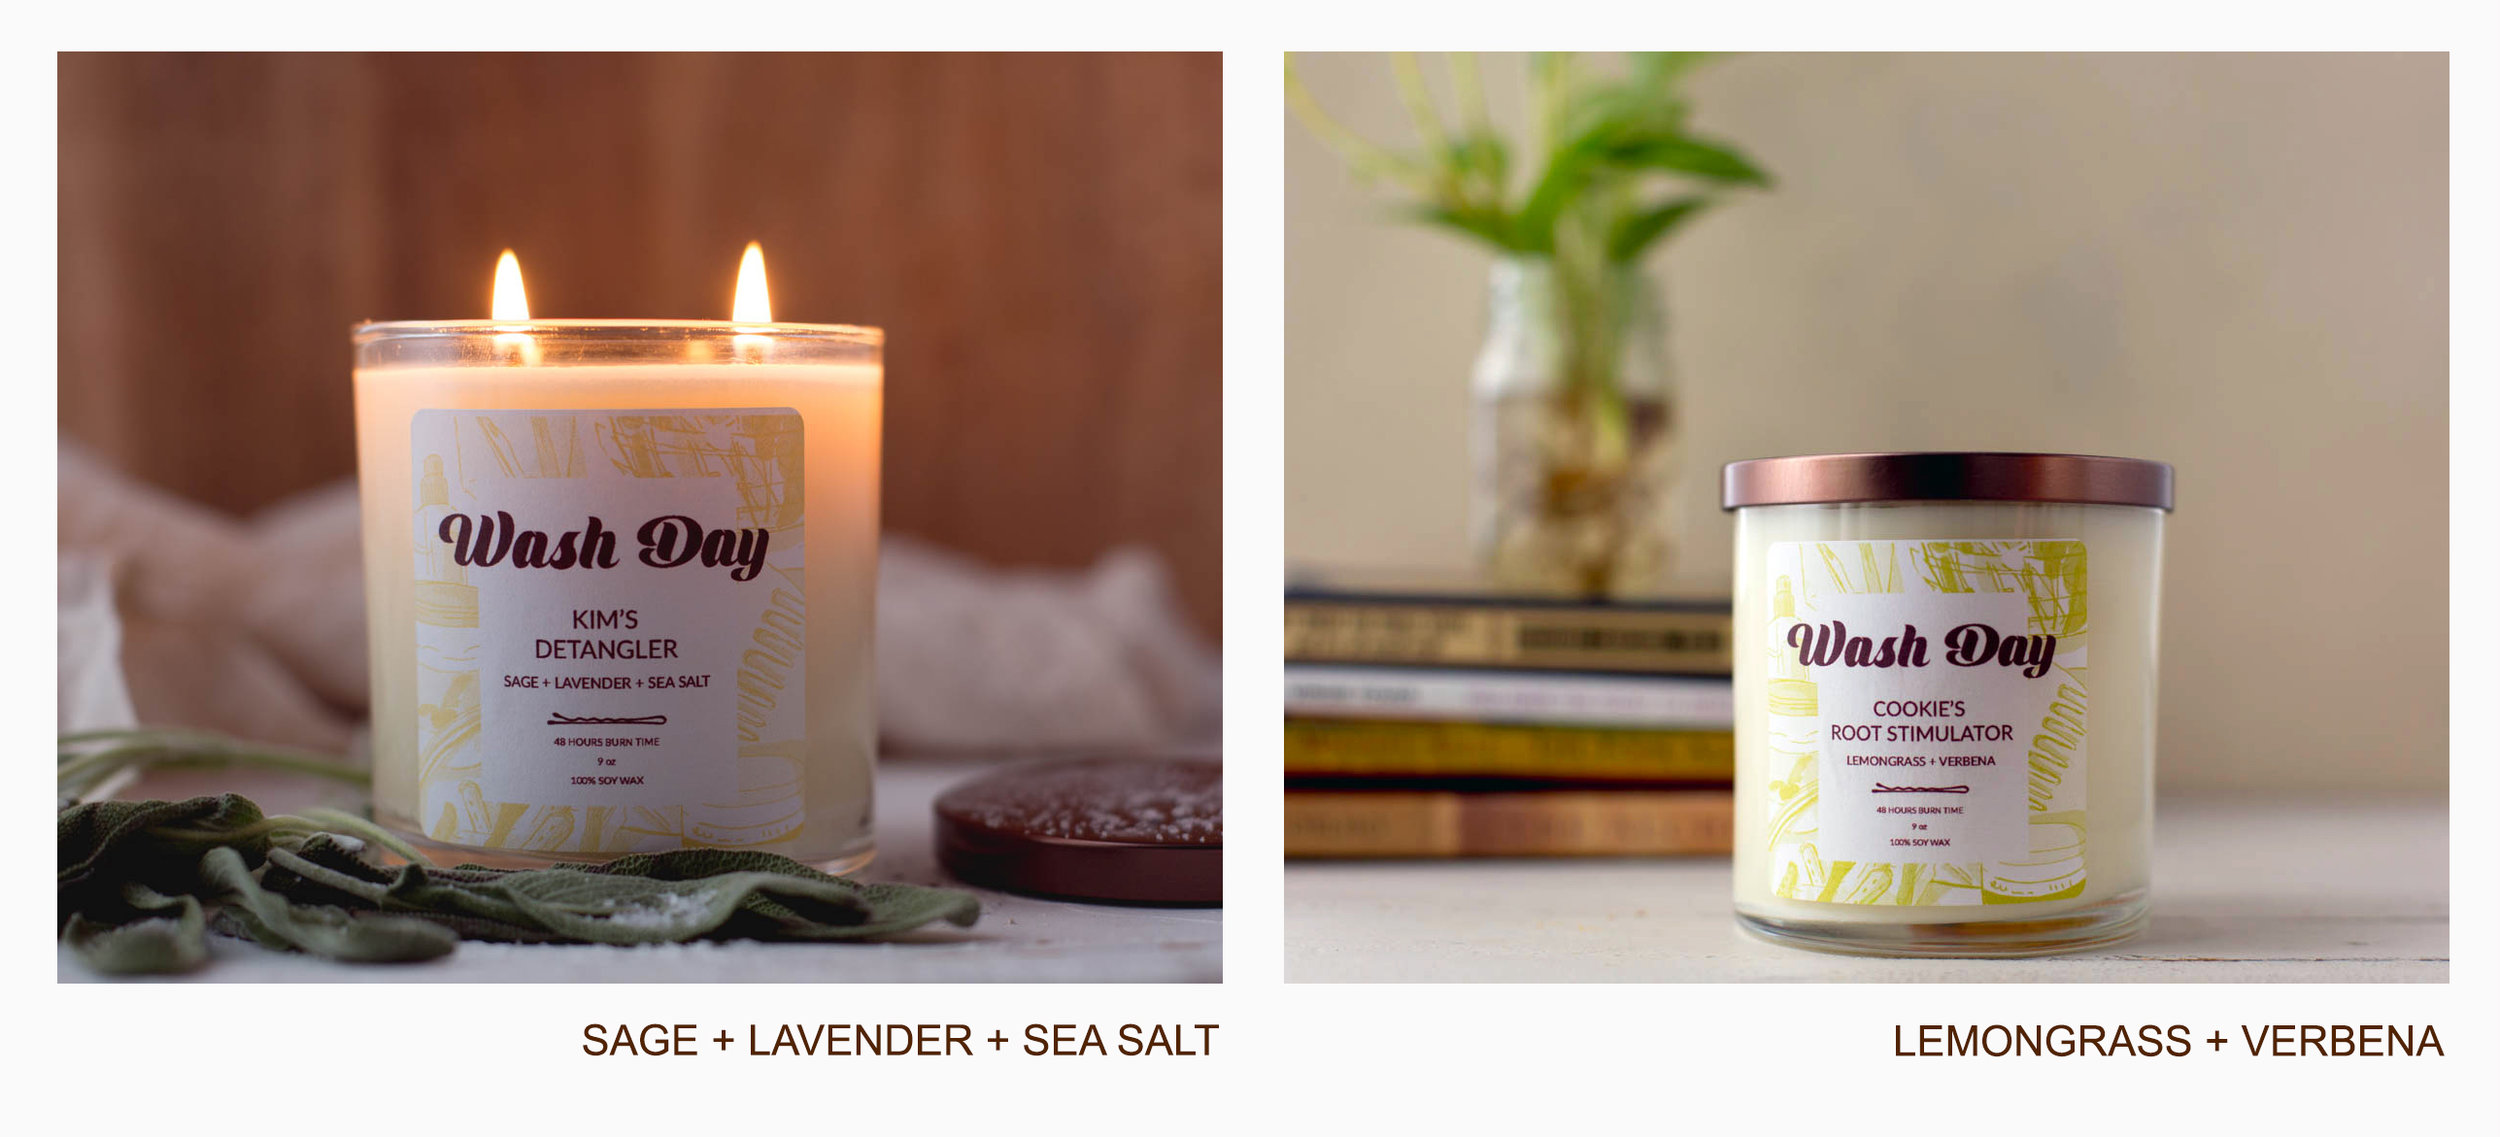 "SAGE + LAVENDER + SEA SALT   ""Kim's Detangler"" features the refreshing fragrances of Sage Leaf, Sea Salt and the relaxing aromatherapy-darling, Lavender. This candle fills the room with a rejuvenating floral-like fragrance that will help ease tension and create a calming atmosphere.     LEMONGRASS + VERBENA   ""Cookie's Root Stimulator"" is made with the invigorating Lemongrass and Verbena fragrances. This blend releases an energizing citrus aroma that will gently uplift the senses and help brighten your mood.     washdaycandles.com"